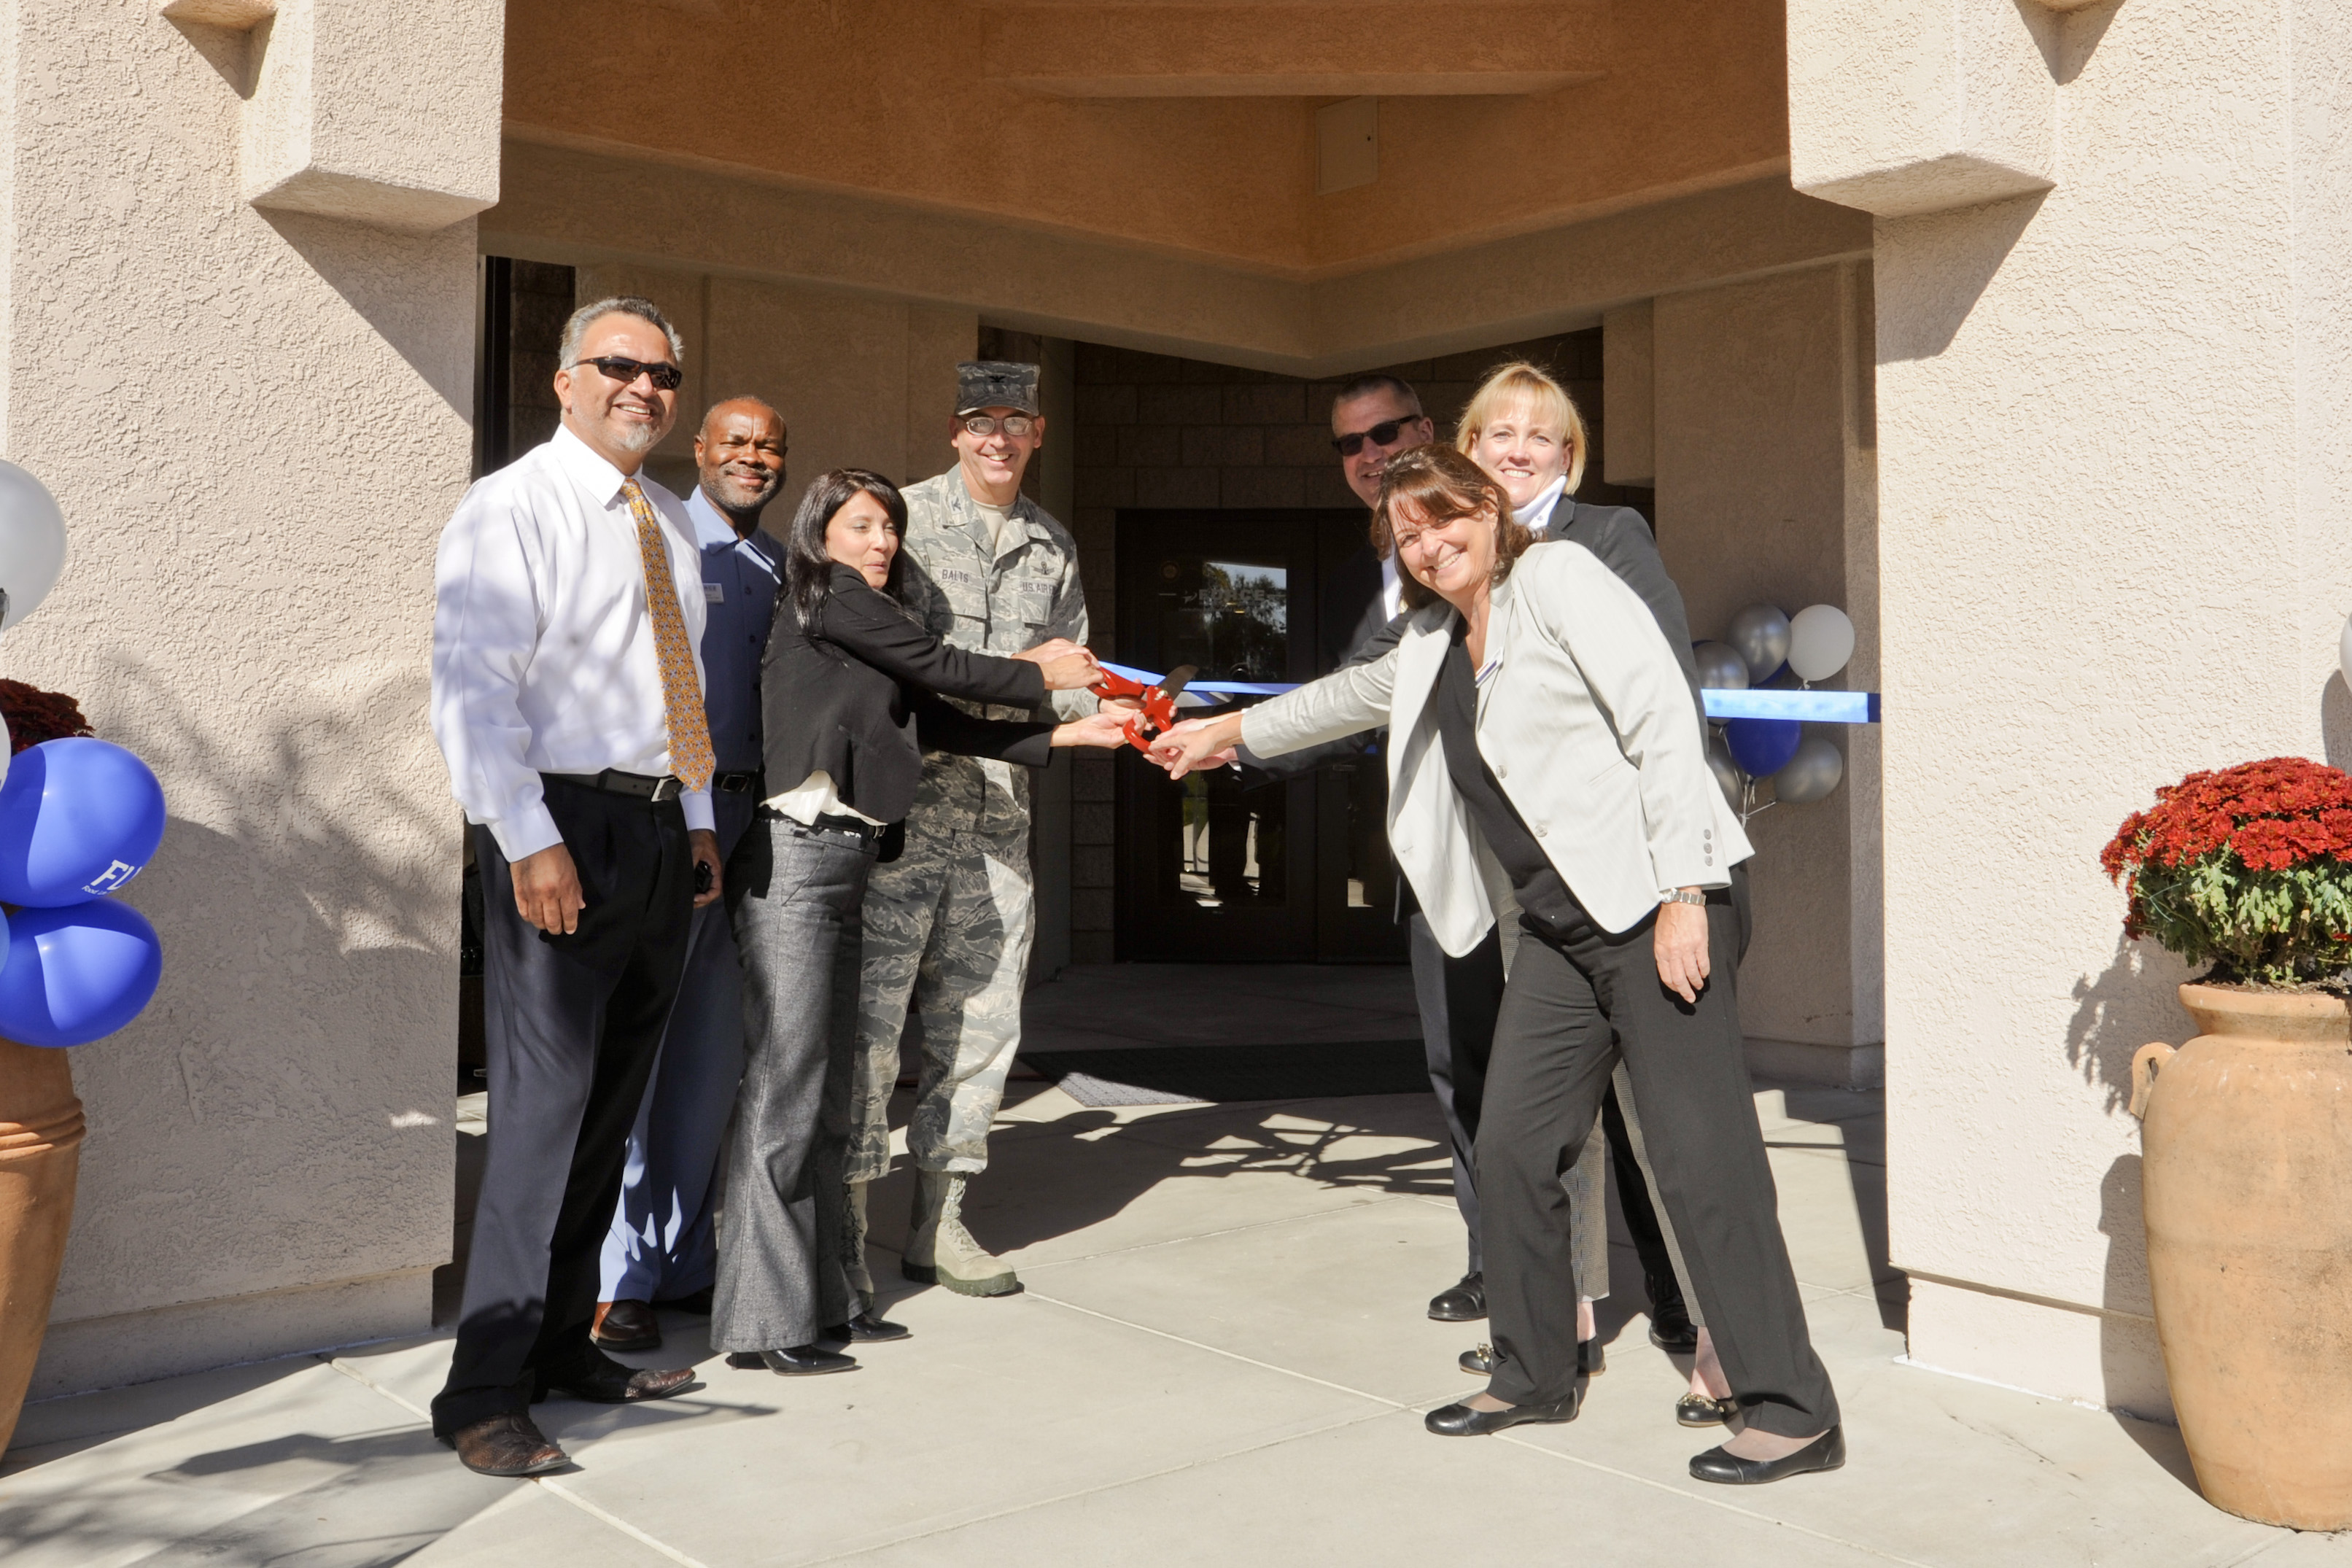 vandenberg breakers dining facility re opens as restaurant